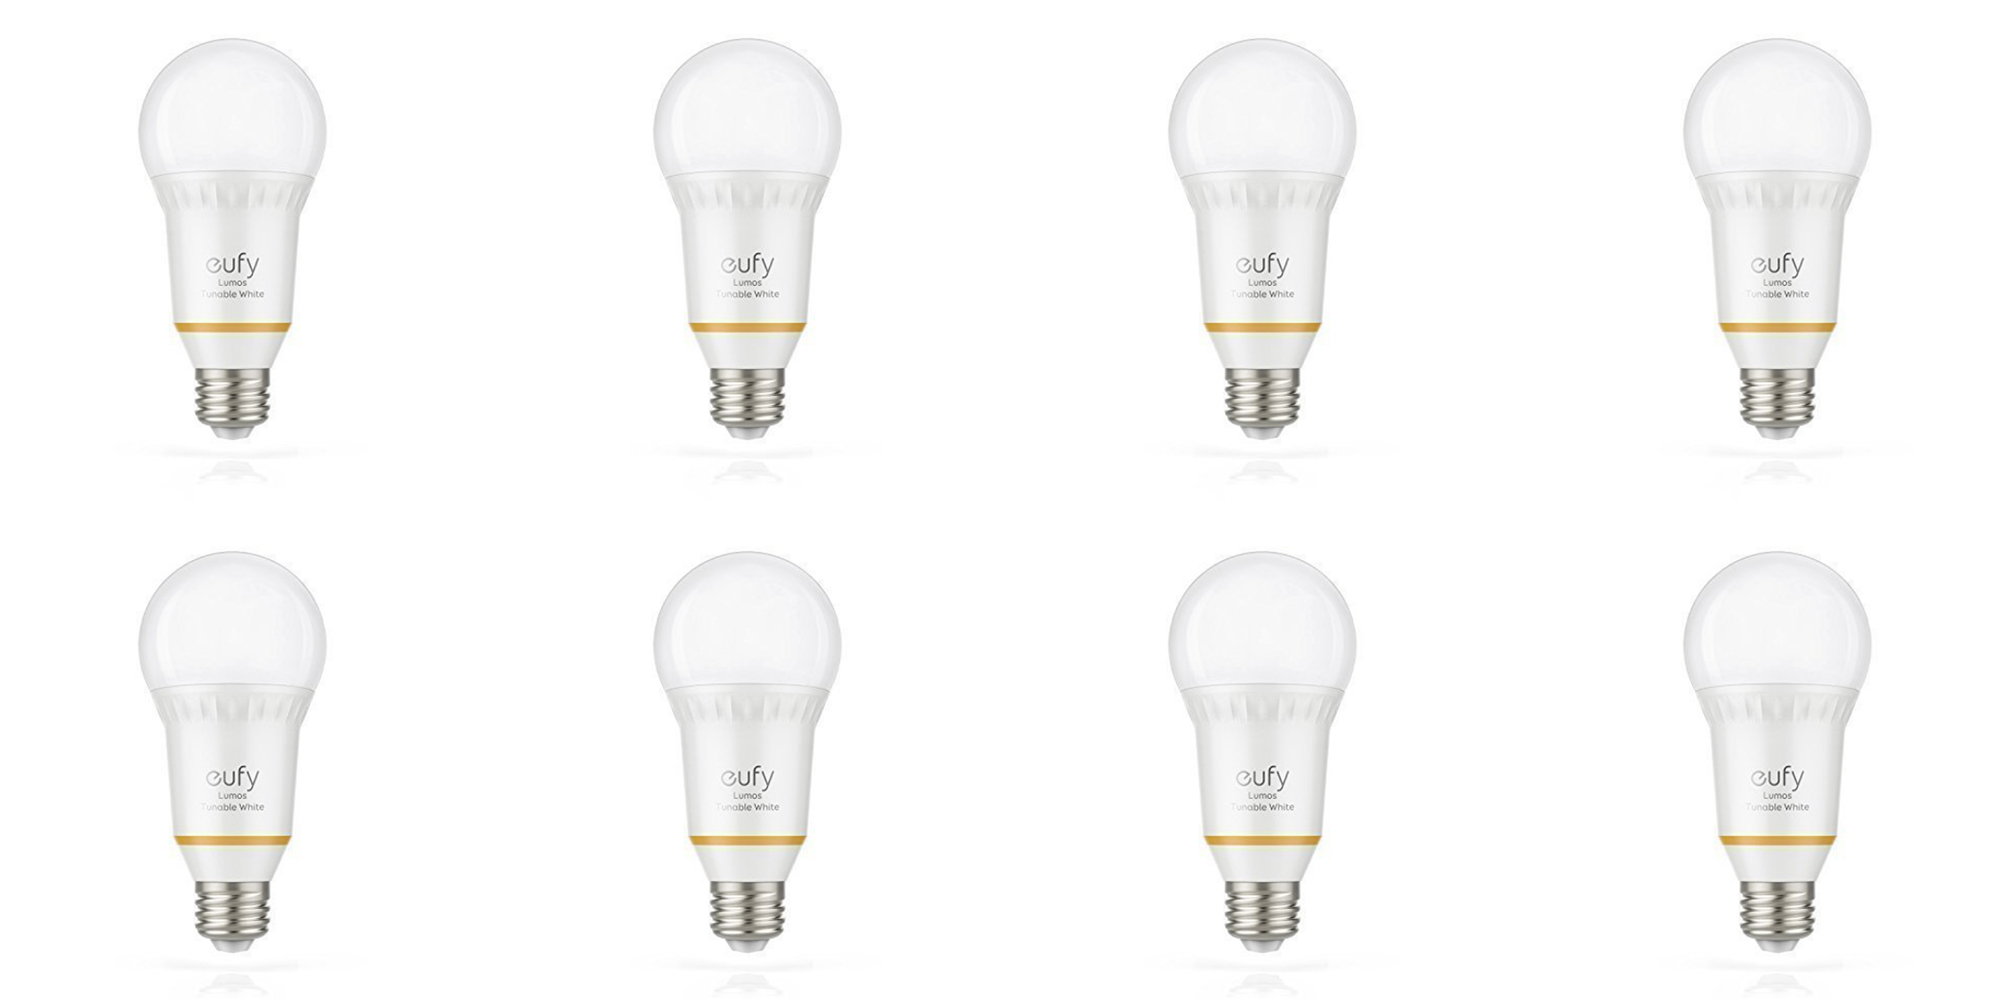 anker u0026 39 s lumos dimmable smart bulbs w   alexa control are